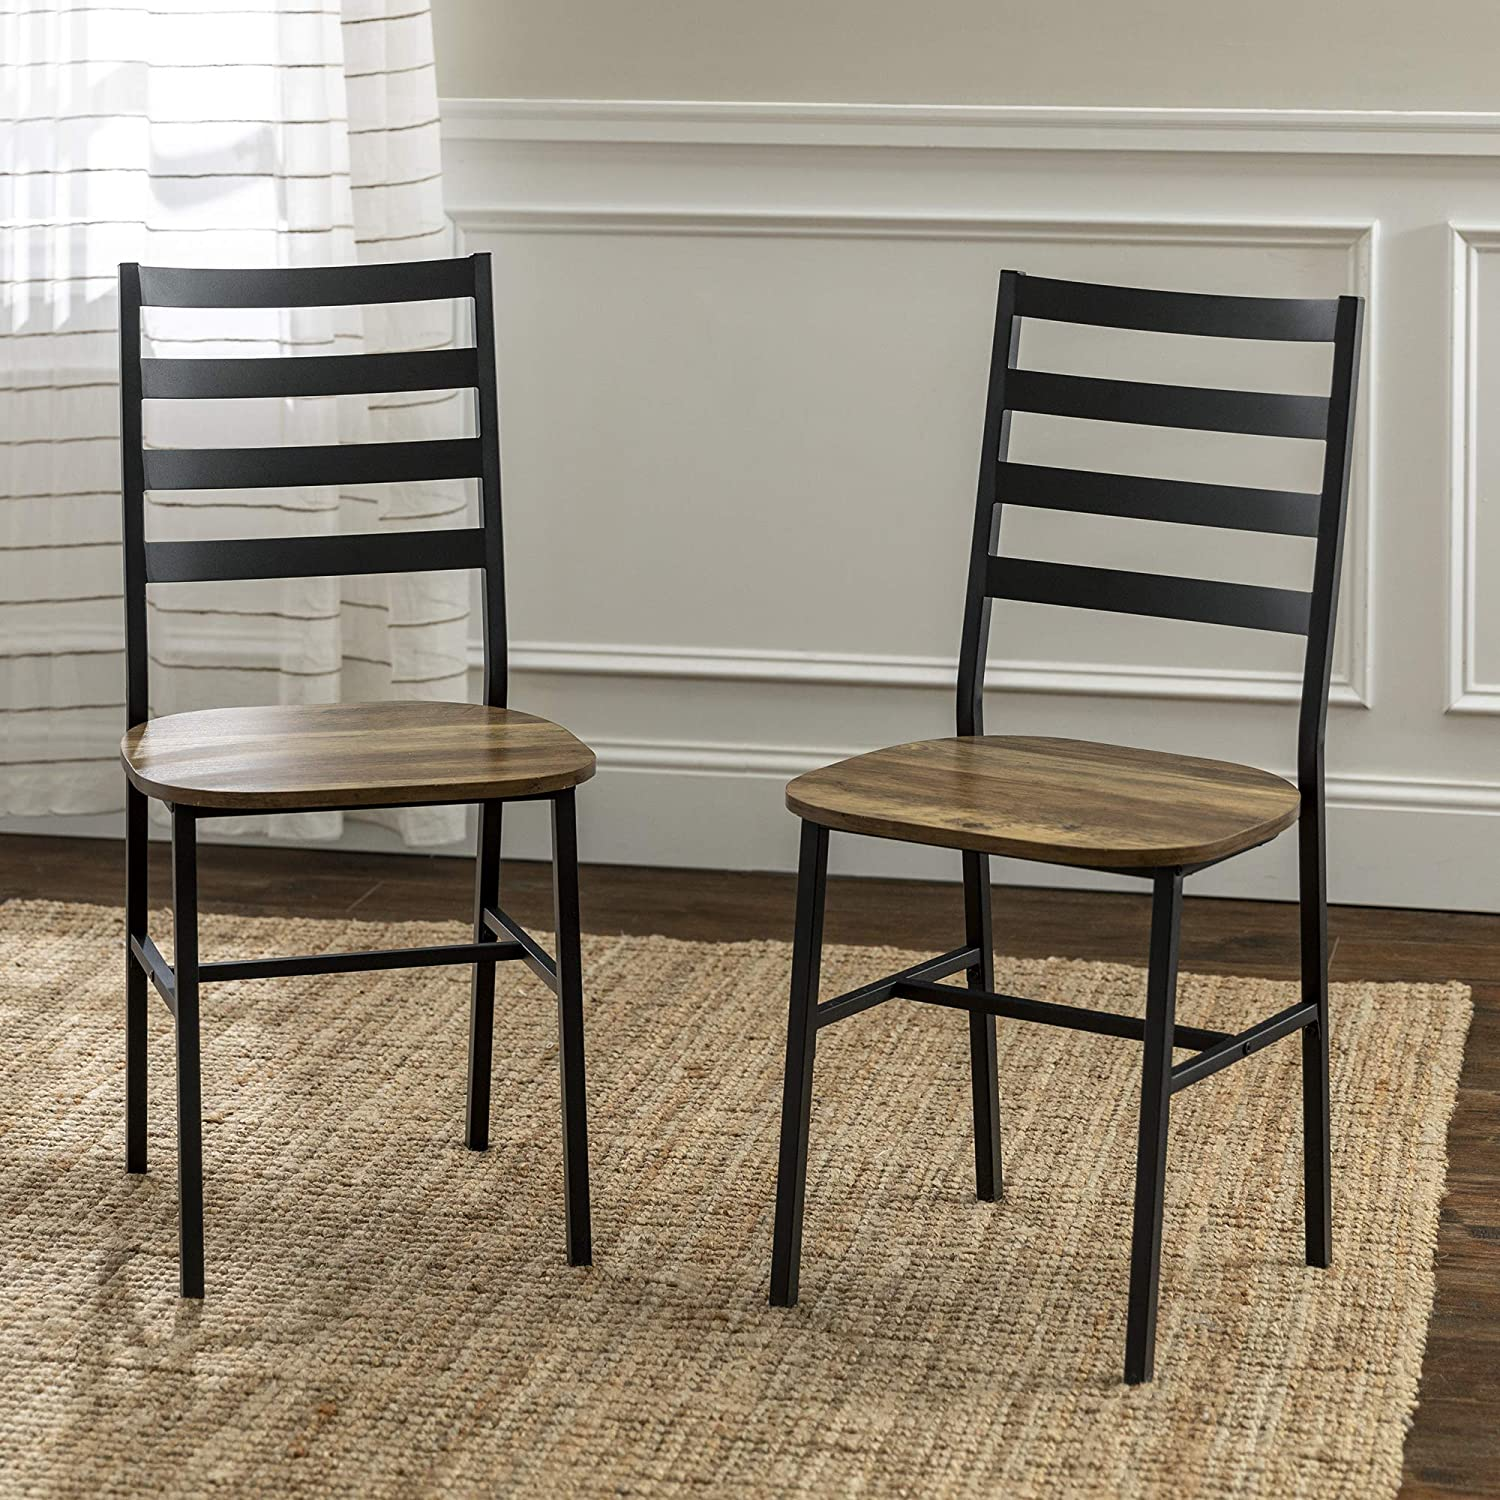 Walker Edison Person Rectangle Kitchen Table Modern Industrial Farmhouse Wood Dining Chairs, Set of 2, Reclaimed Barnwood